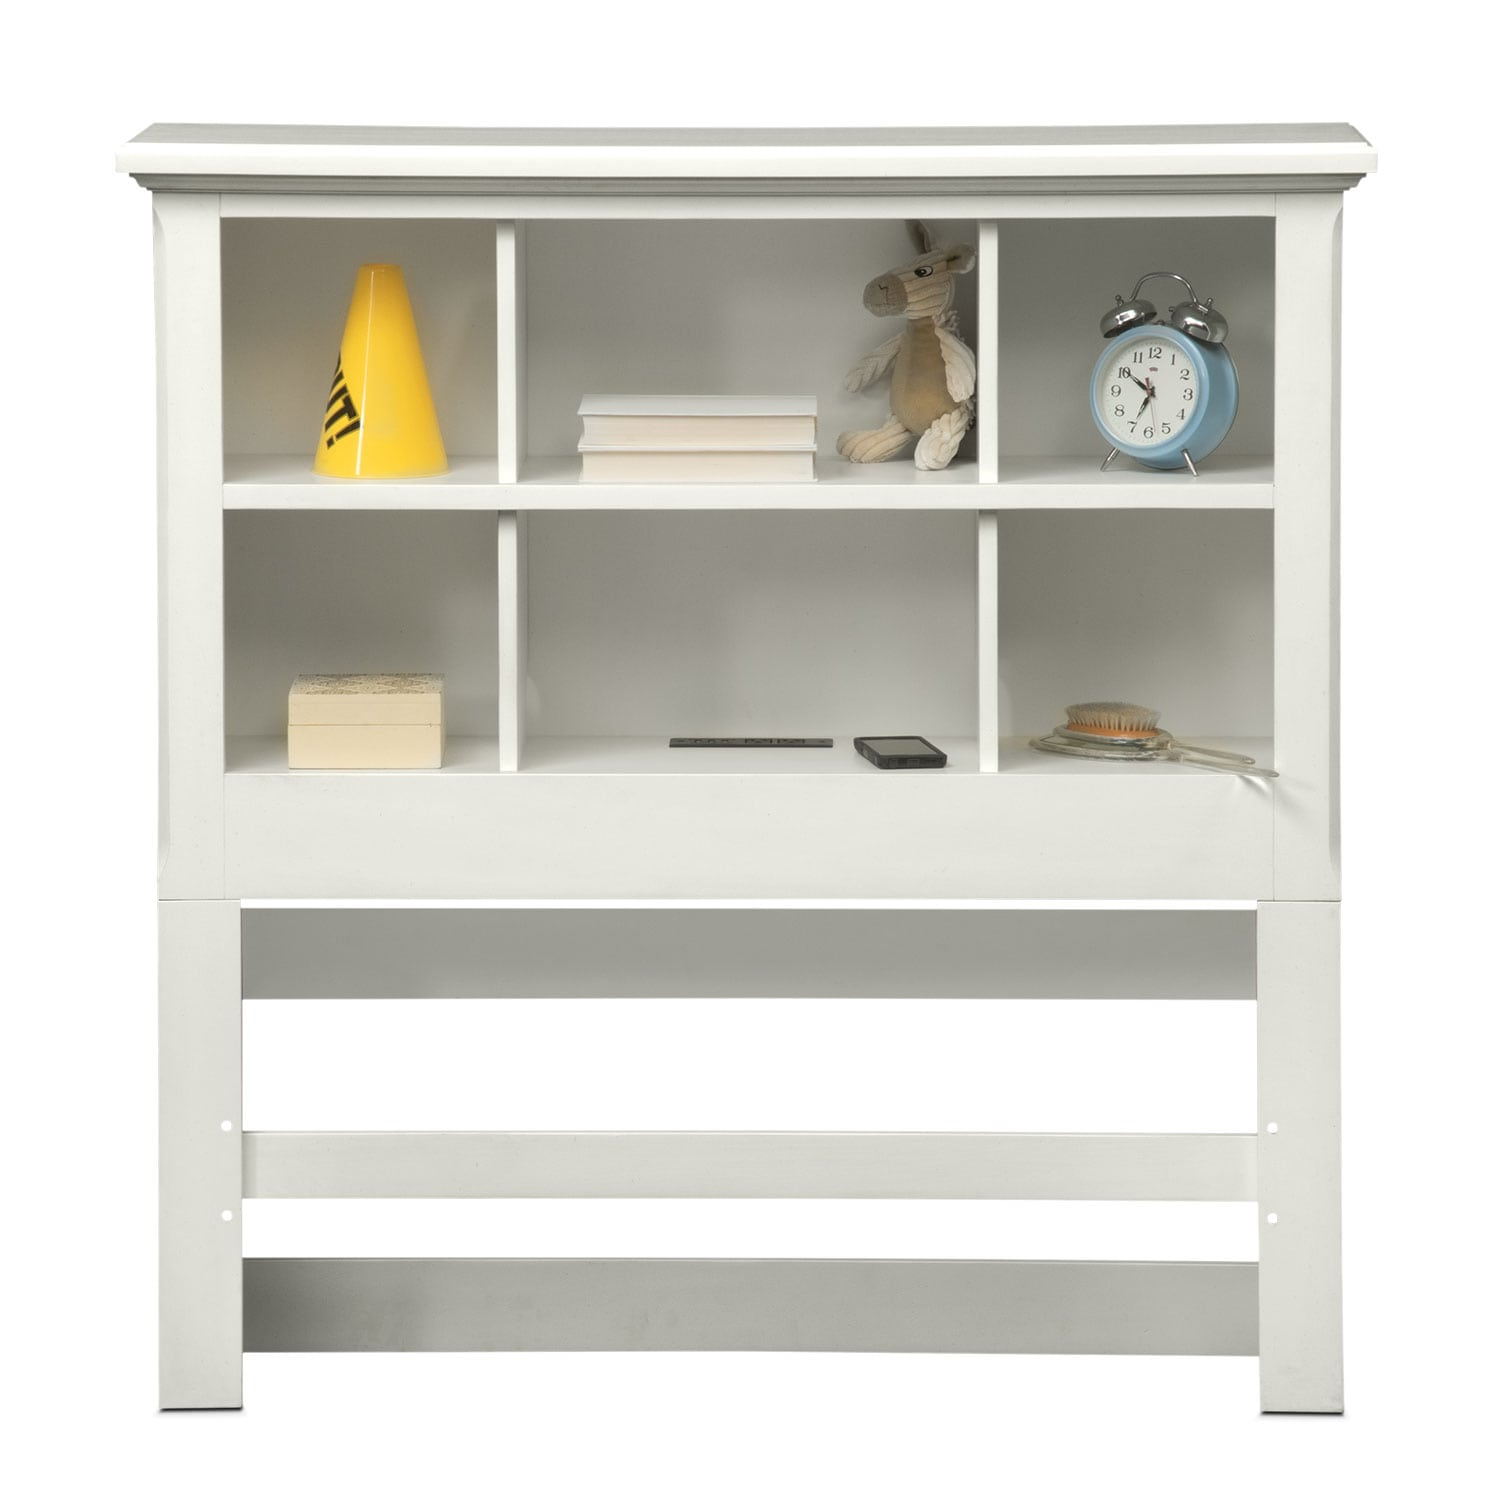 Hanover youth 6 piece twin bookcase bedroom set white american